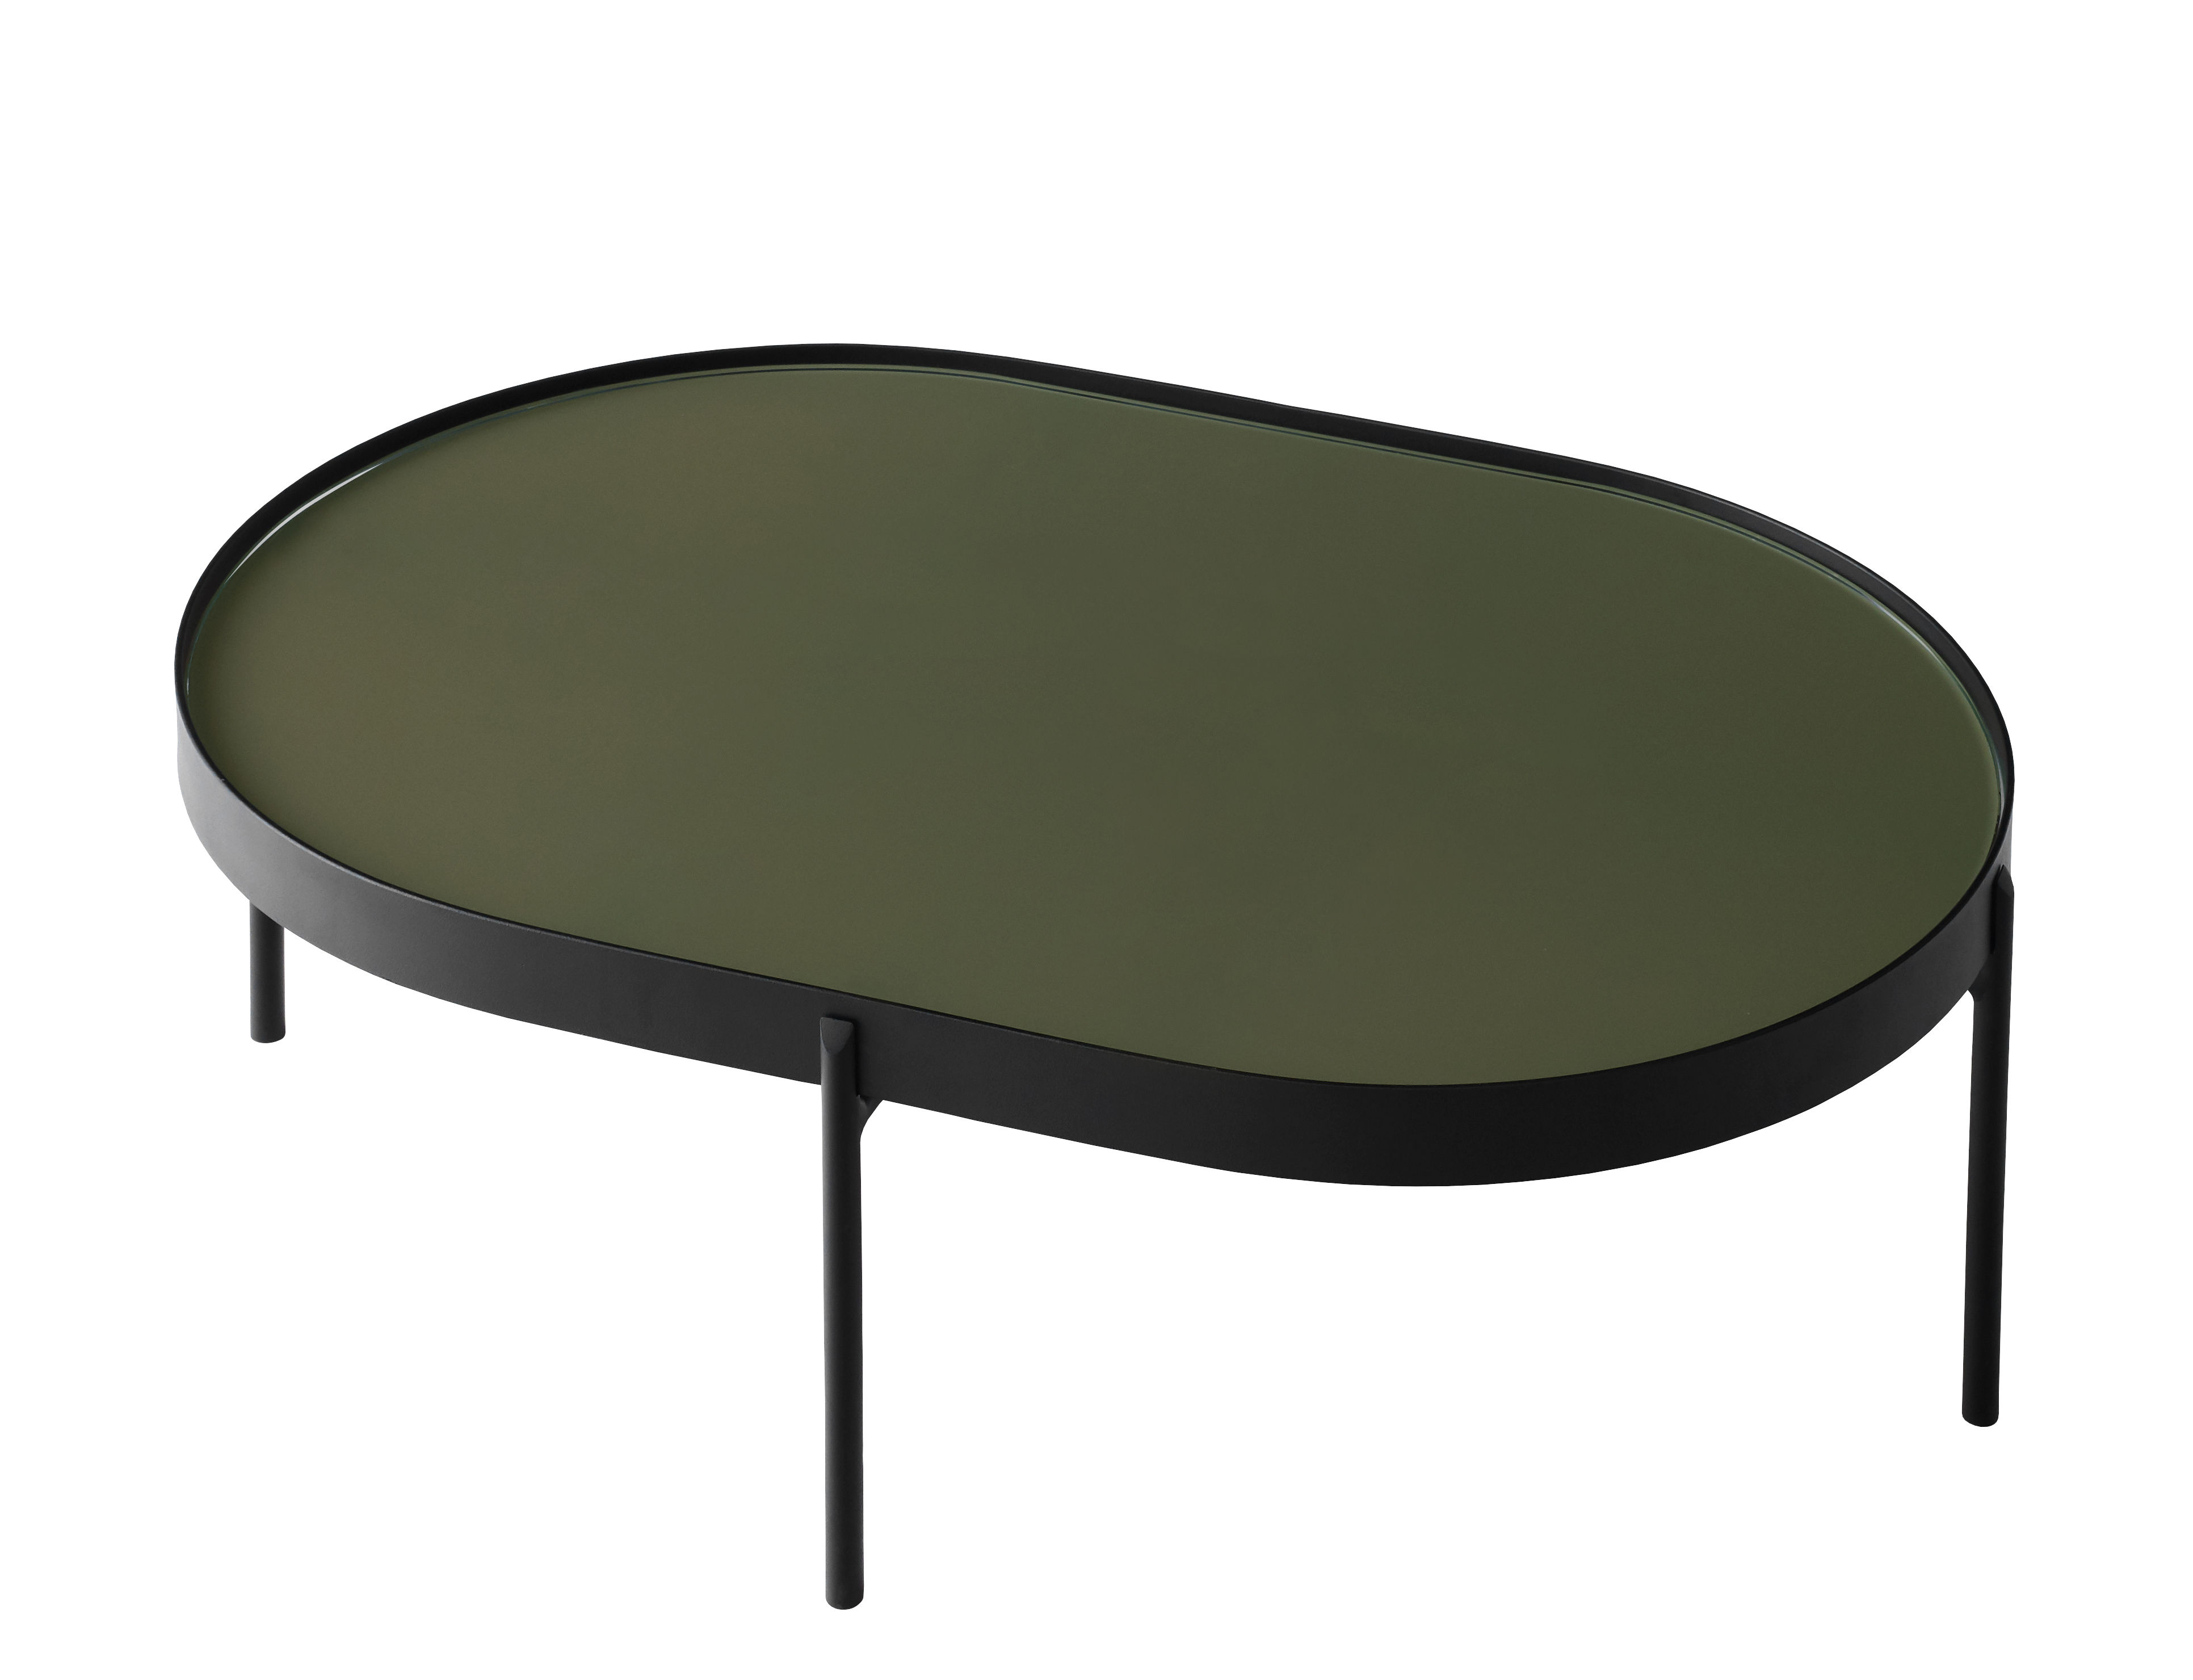 Furniture - Coffee Tables - No-No Large Coffee table - / 96 x 59 x H 35 cm by Menu - Dark green / Black structure - Polished glass, Powder steel